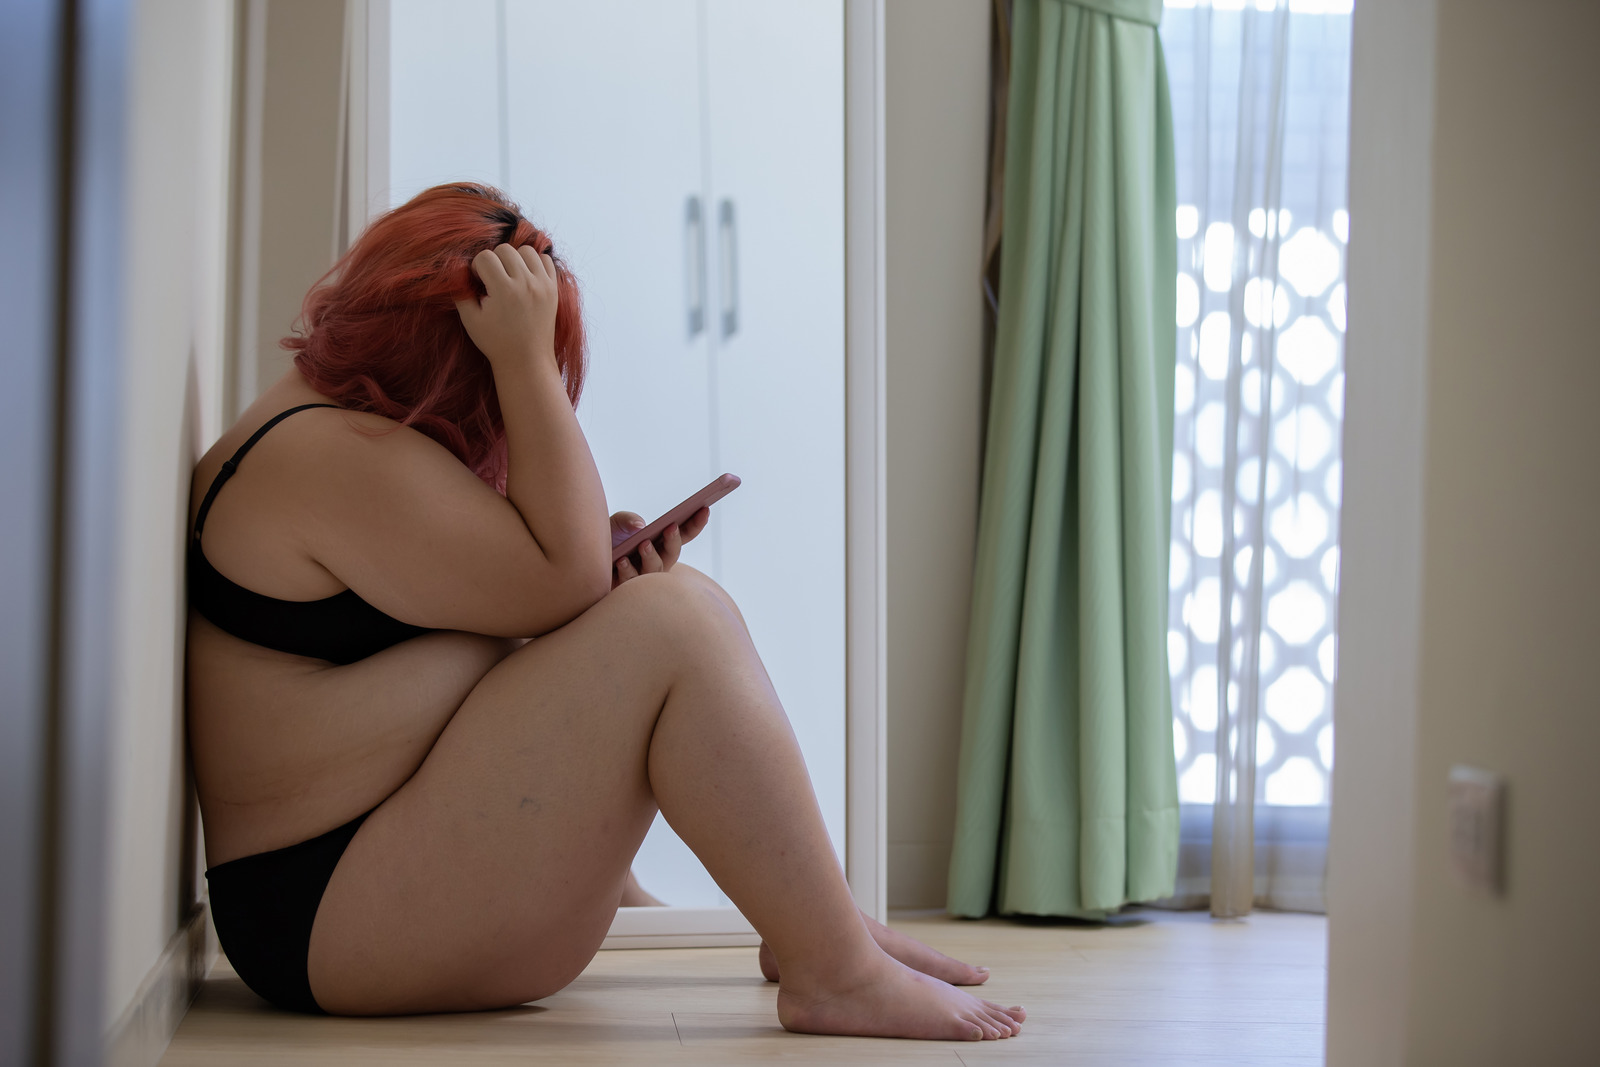 plus size woman looking at her phone in underwear STOCK PHOTO